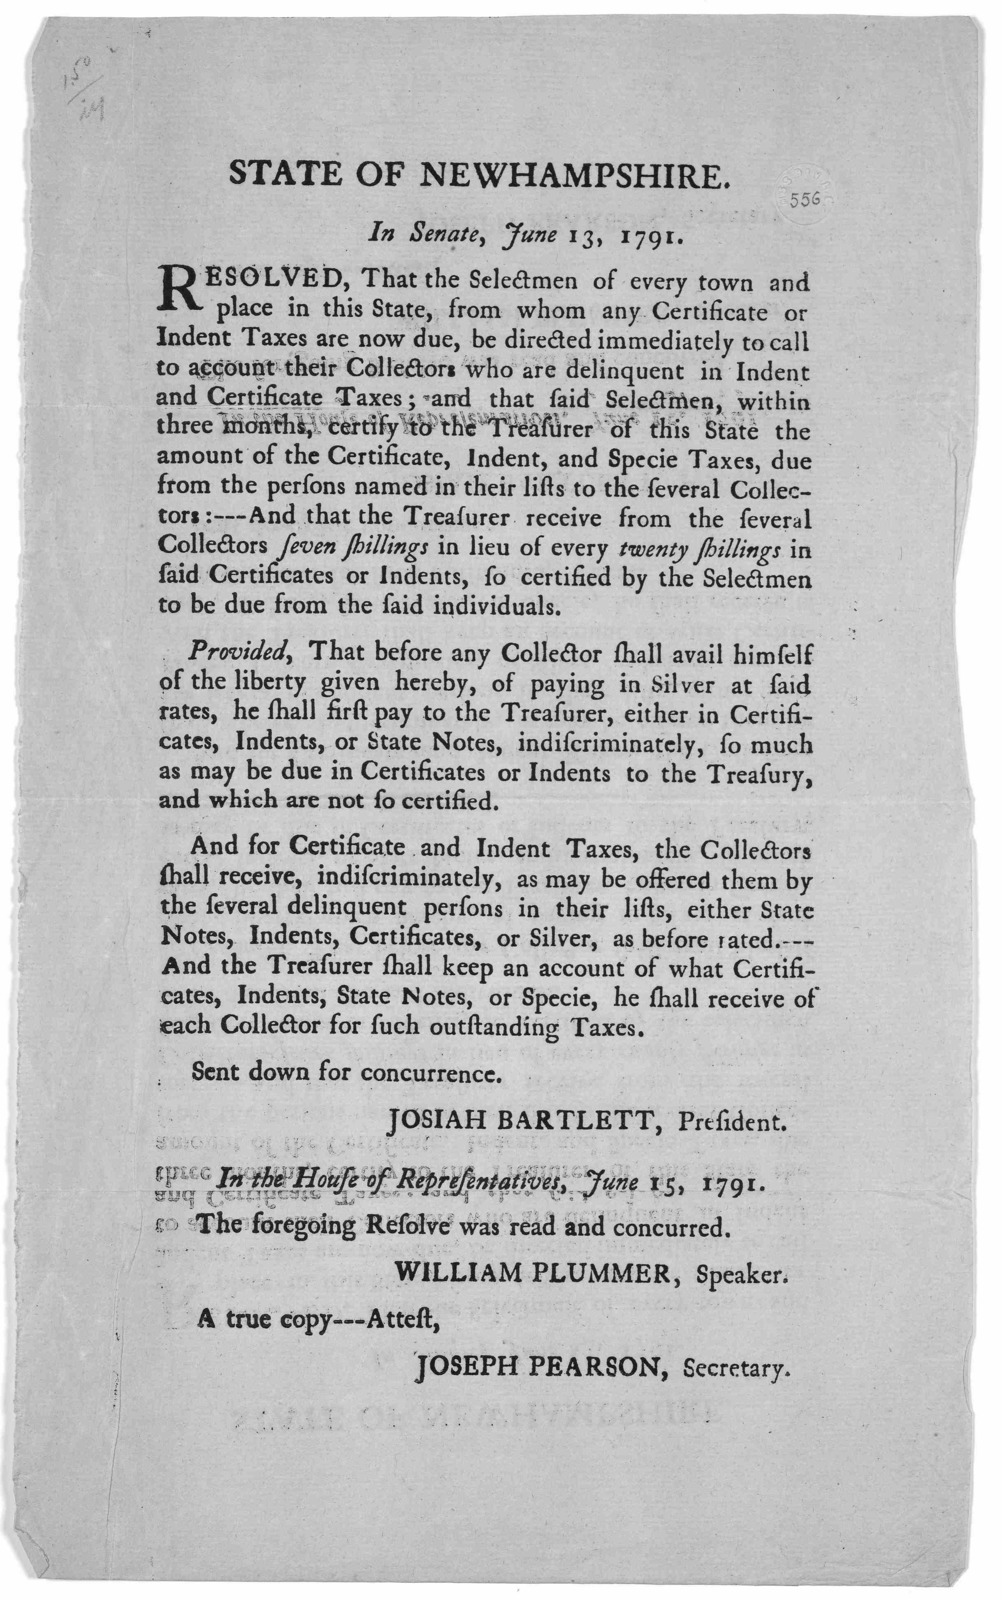 State of New Hampshire. In Senate, June 13, 1791. Resolved, that the selectmen of every town and place in this State, from whom any certificate or indent taxes are now due, be directed immediately to call to account their collectors who are deli